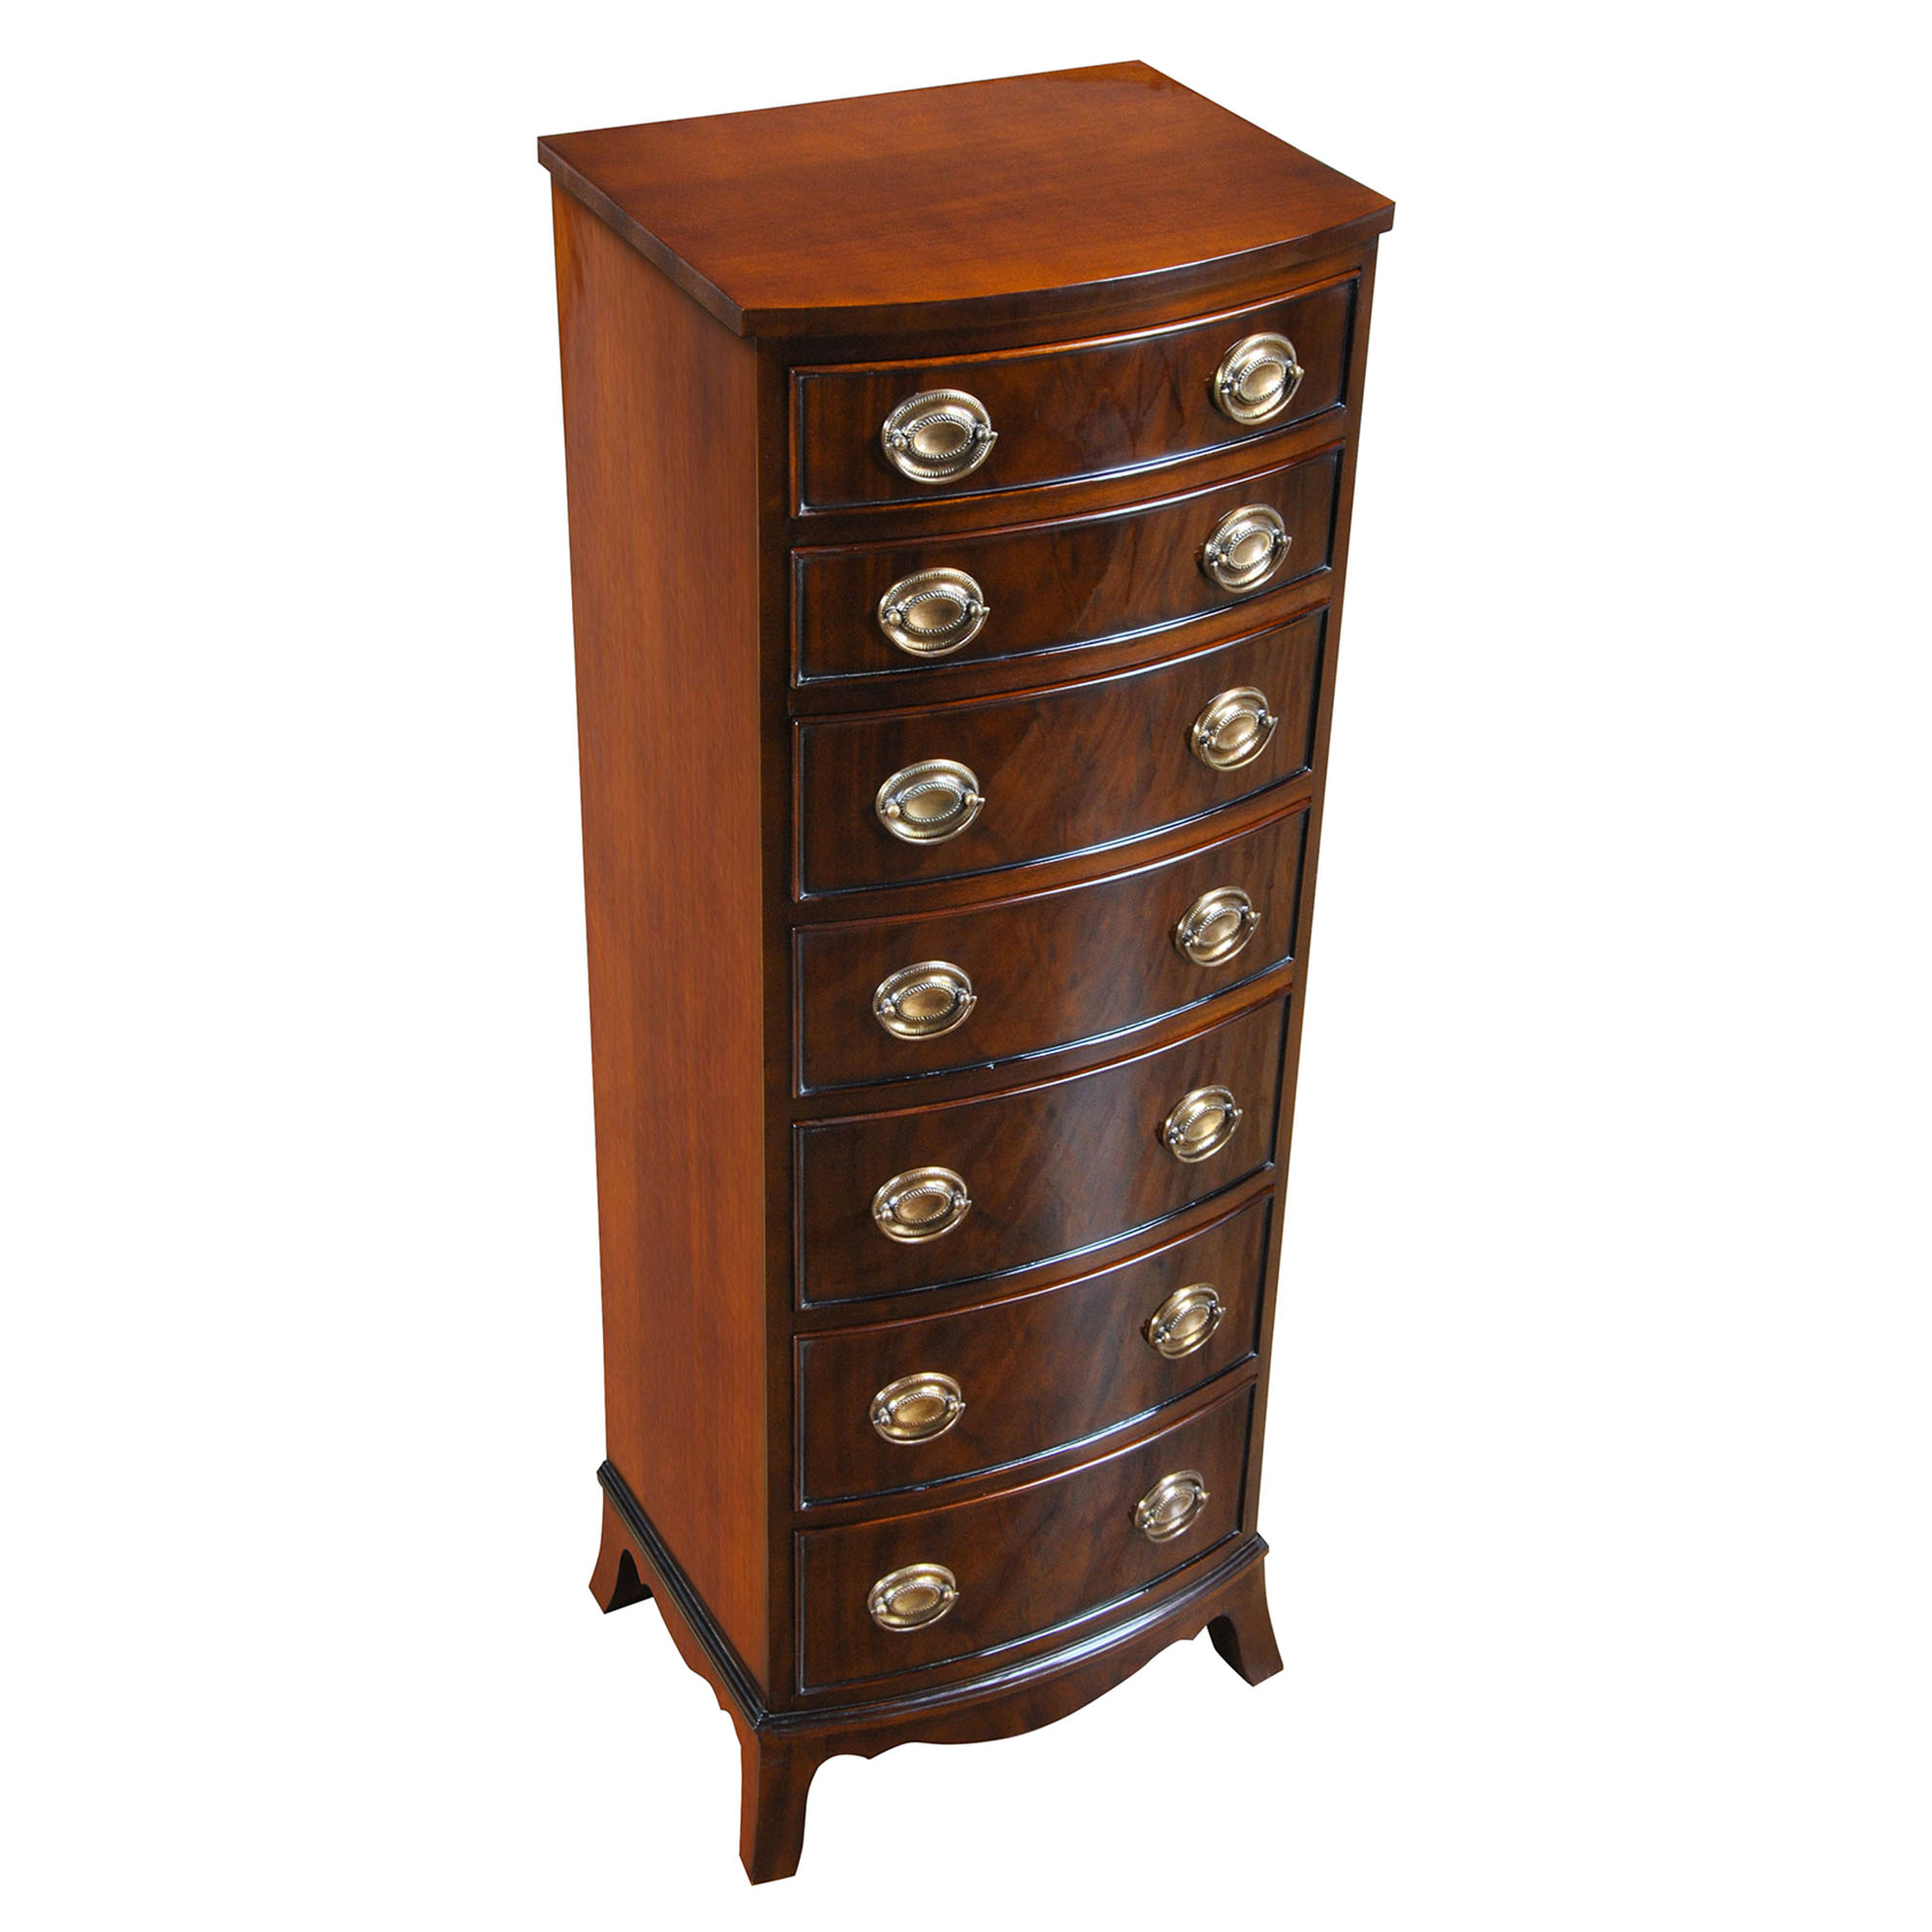 Furniture Chest Mahogany Lingerie Chest Niagara Furniture High Quality